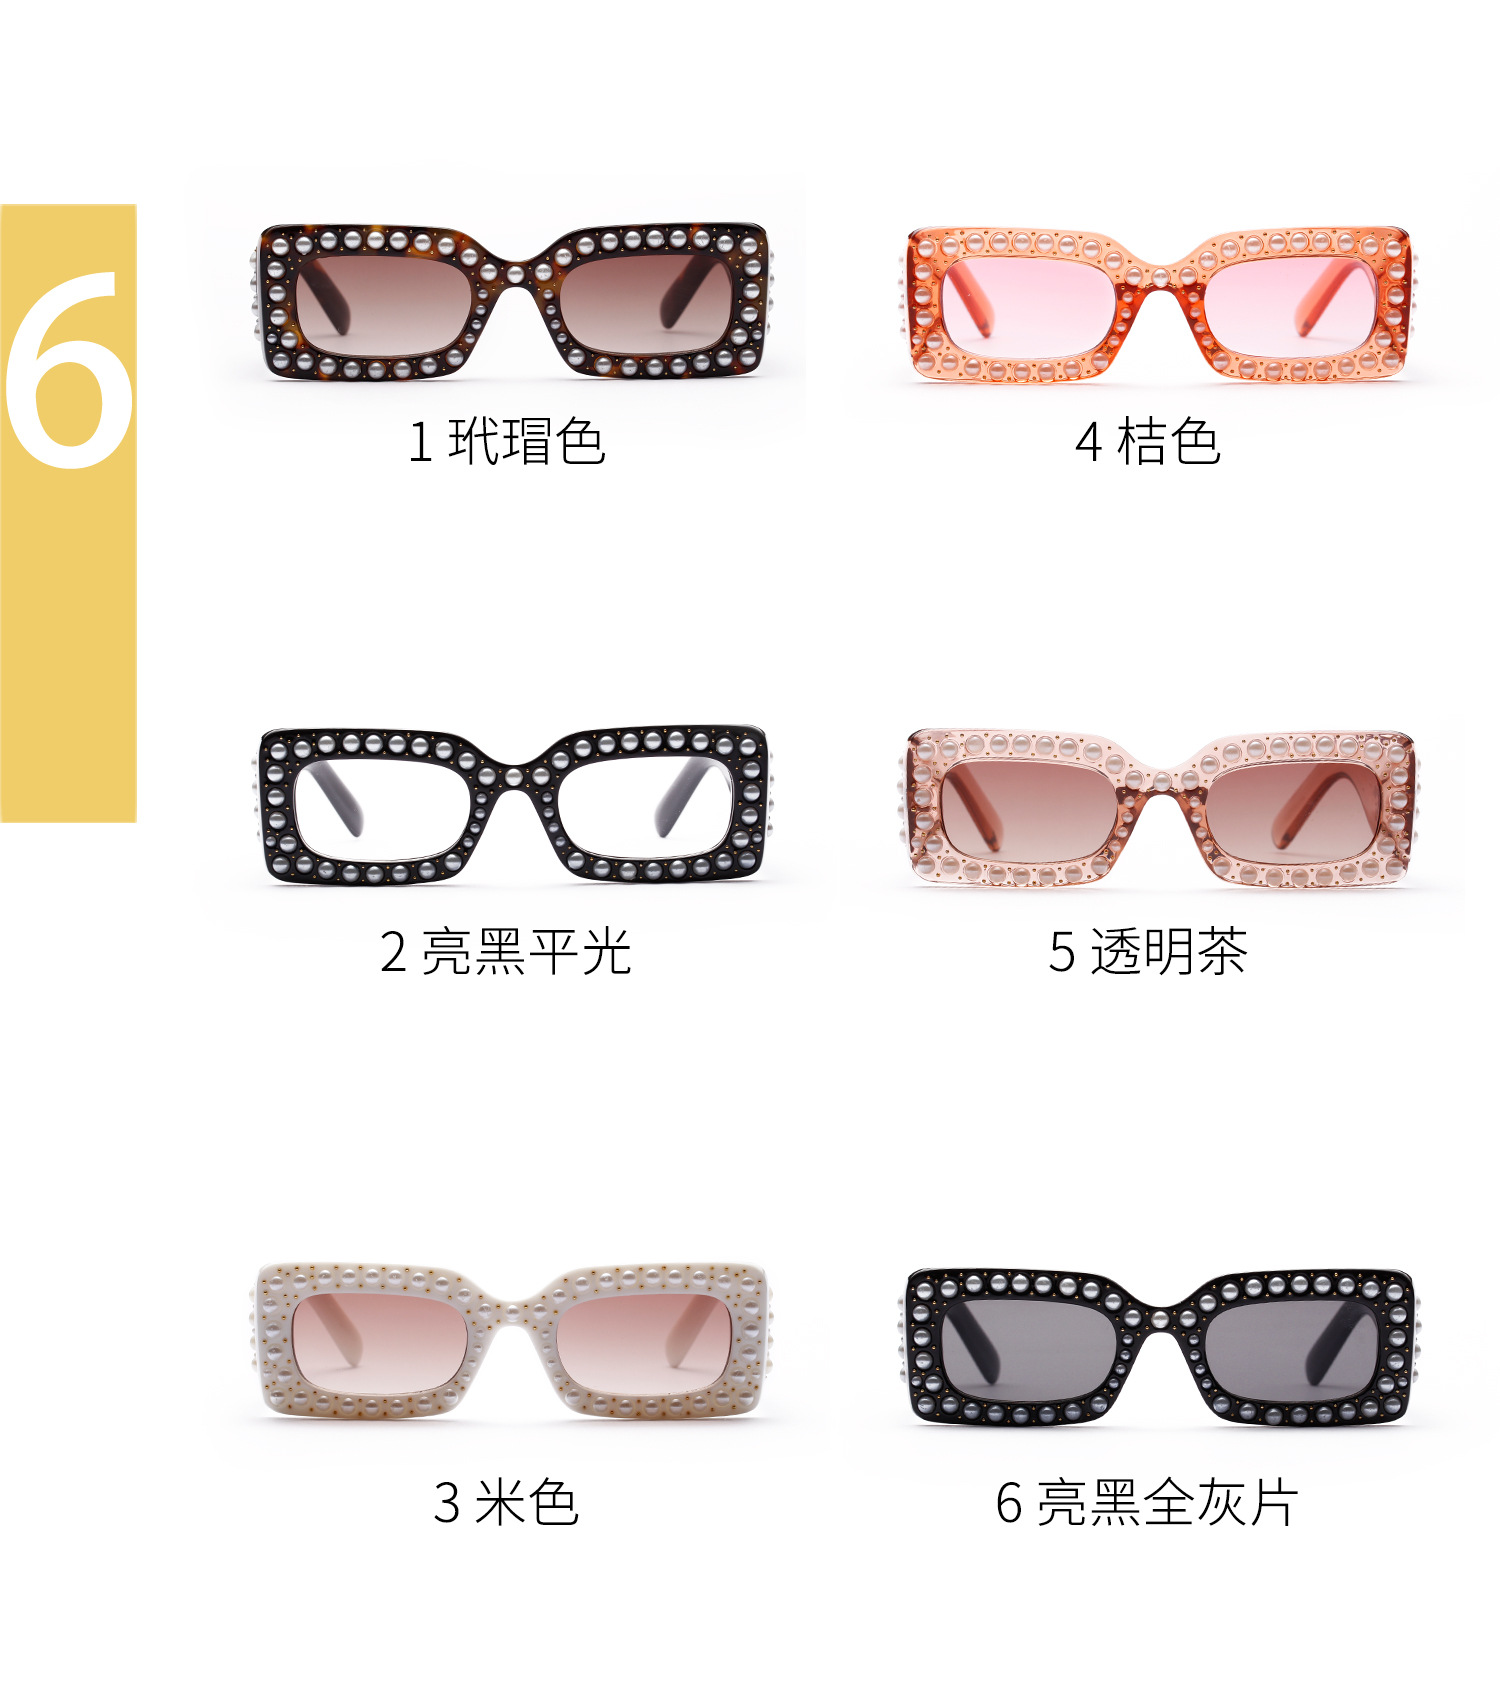 Pearl Frame Fashionable Design Custom Sunglasses